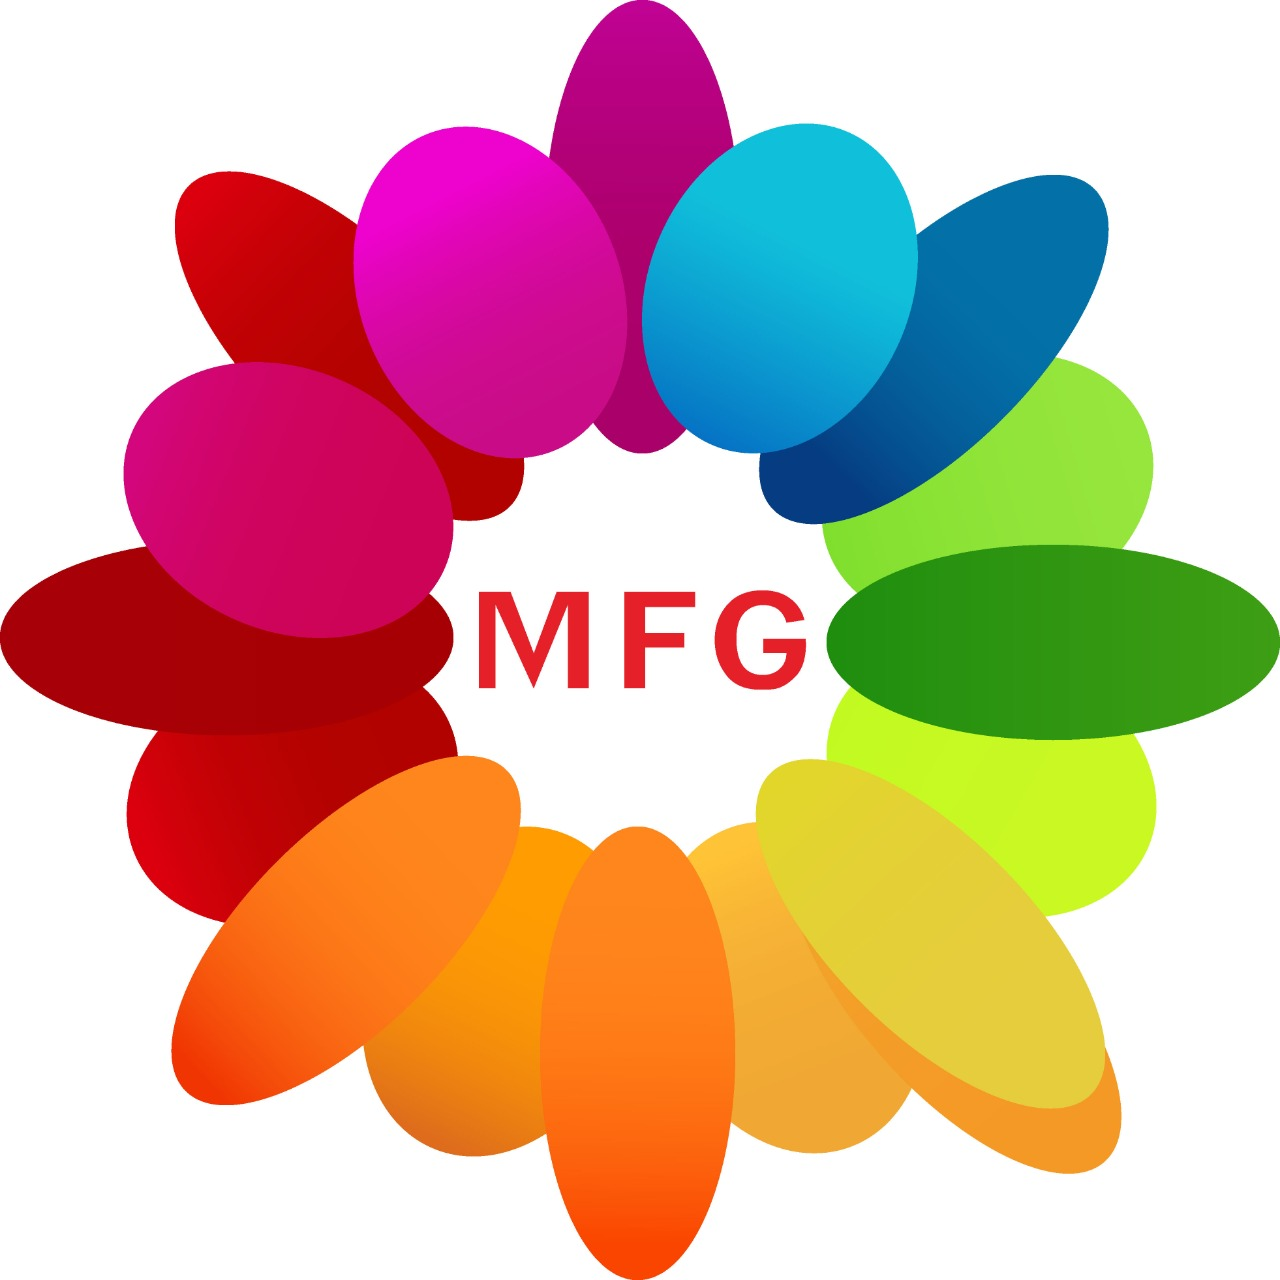 Bunch of exotic white lilies with red roses along with 1 feet height teddy bear